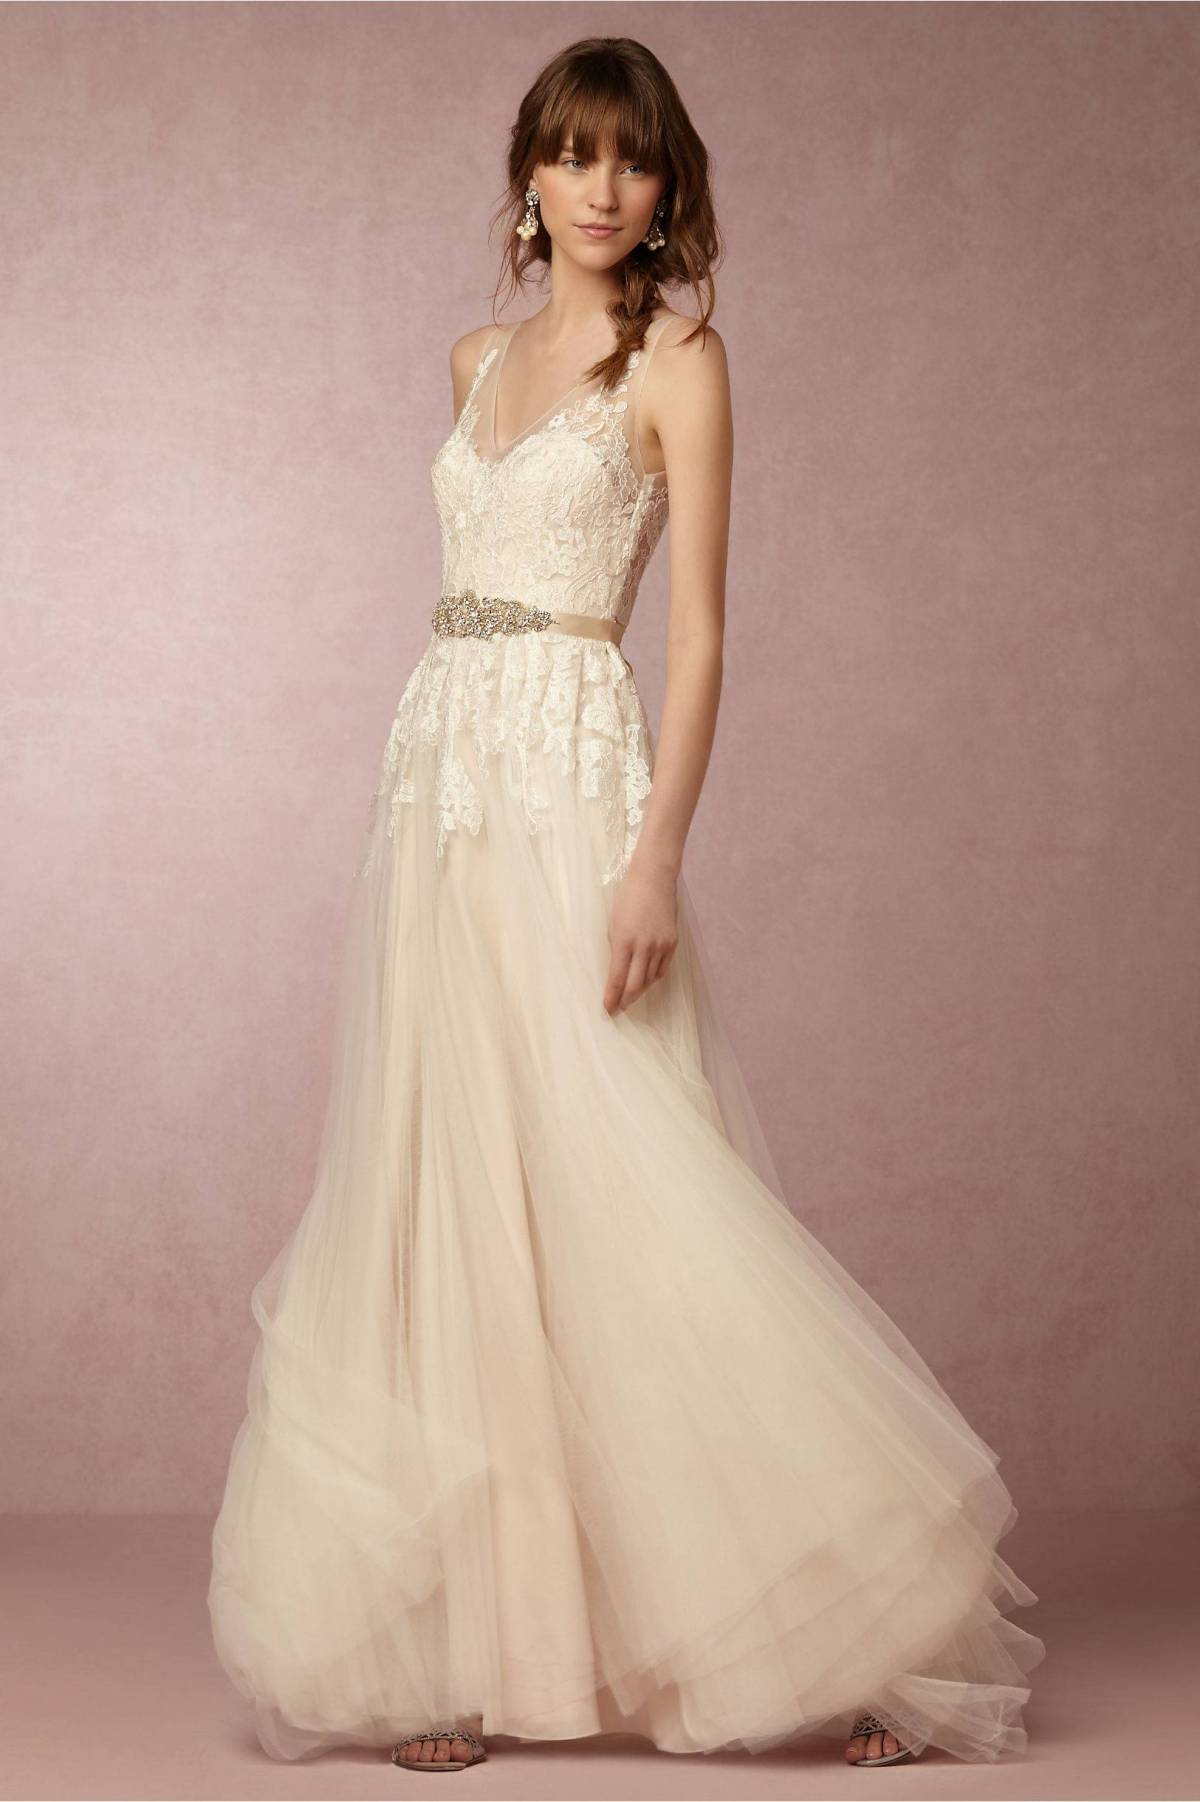 Reagan Gown BHLDN - $975